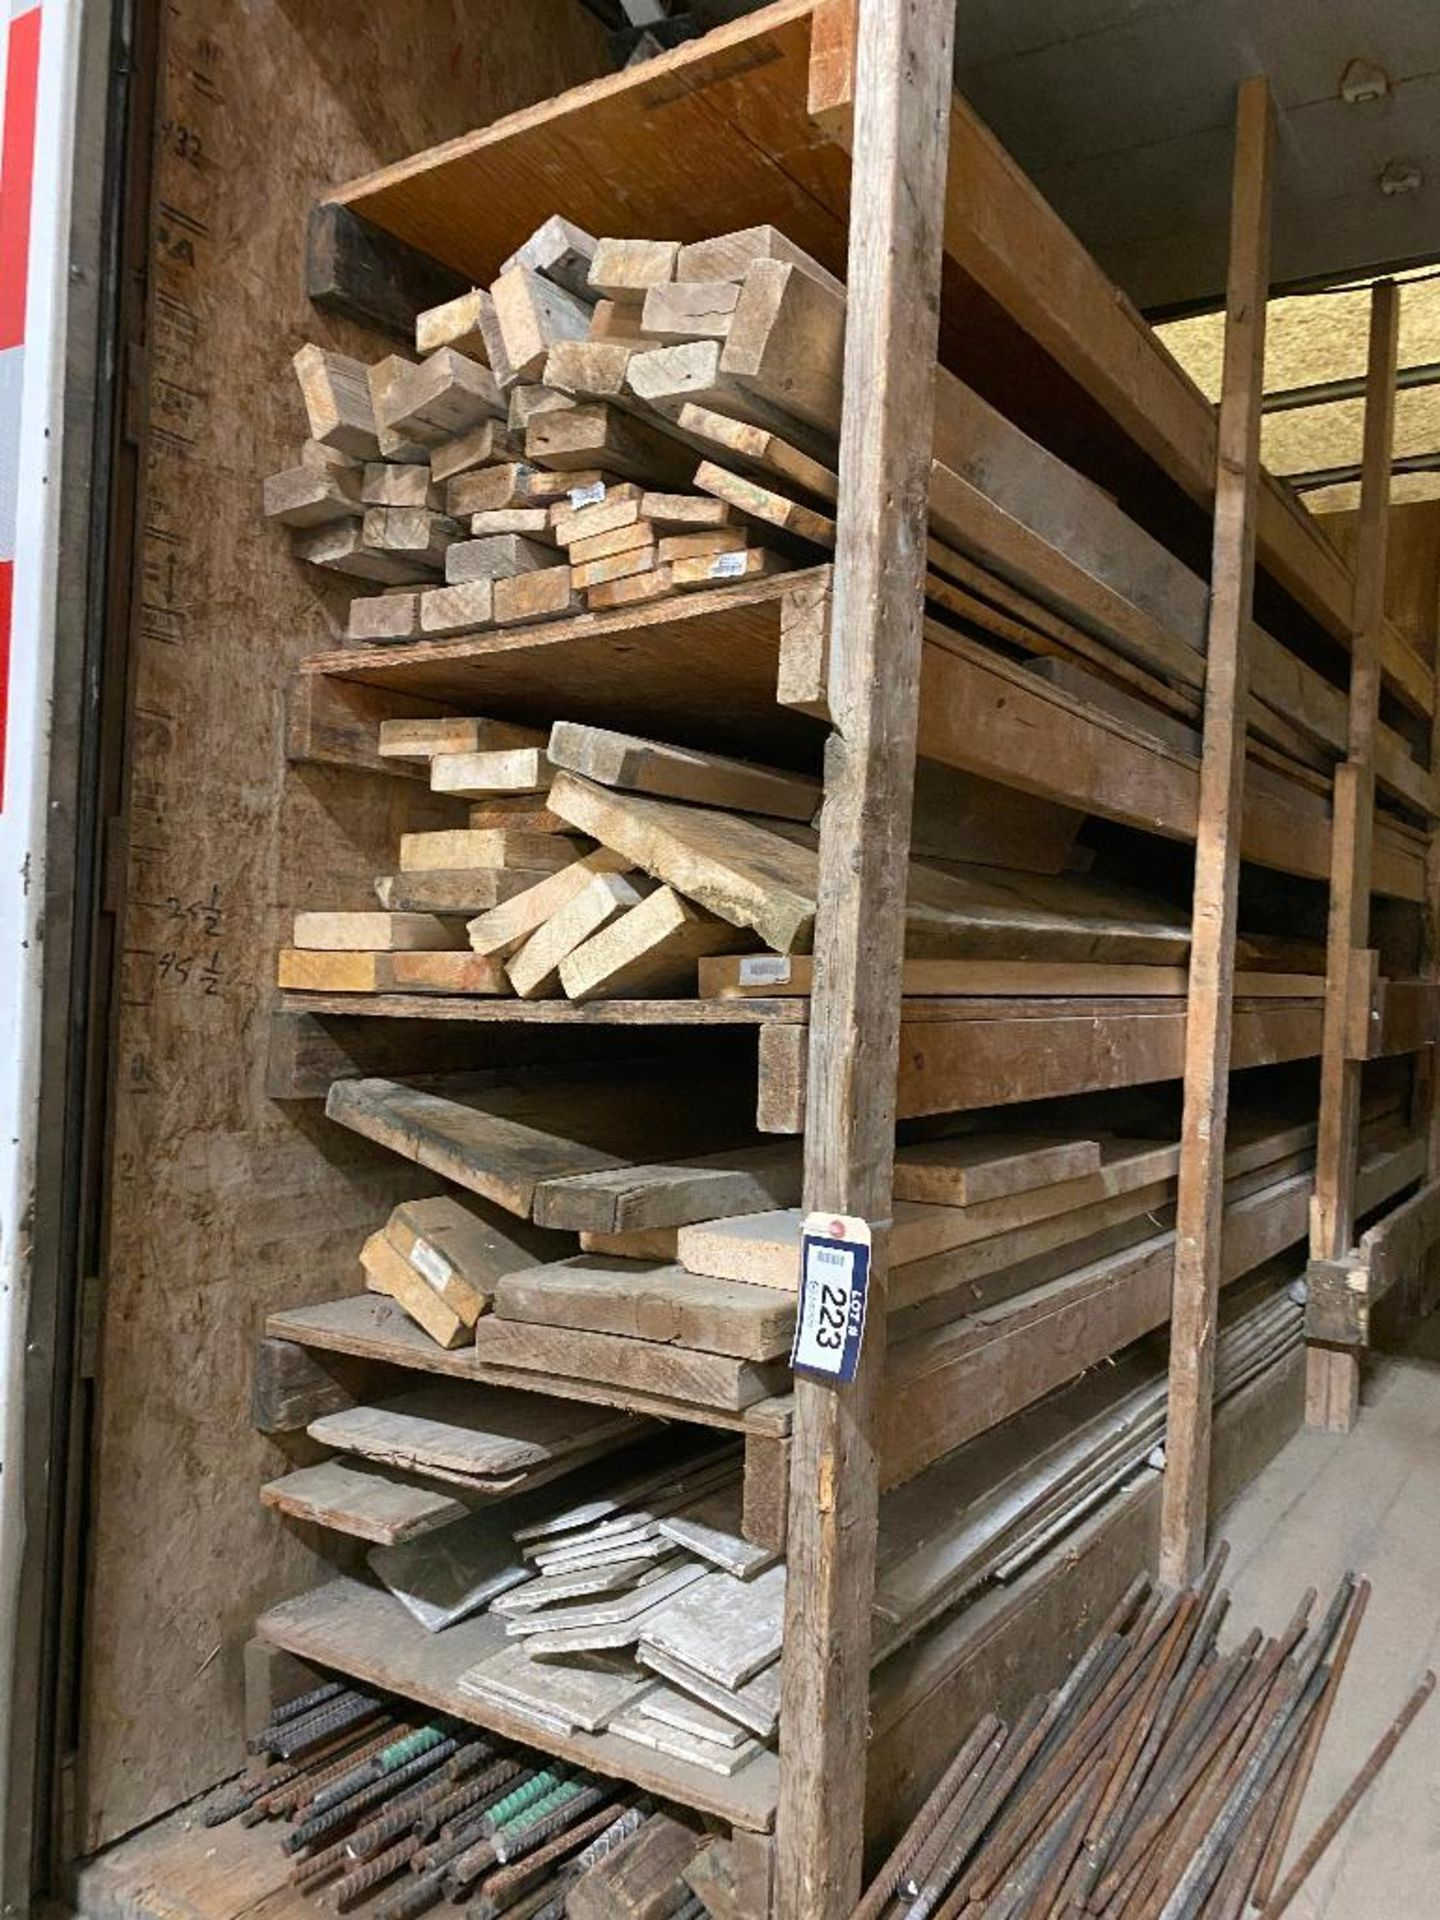 Lot of Asst. Form Lumber and Rebar - Image 3 of 4